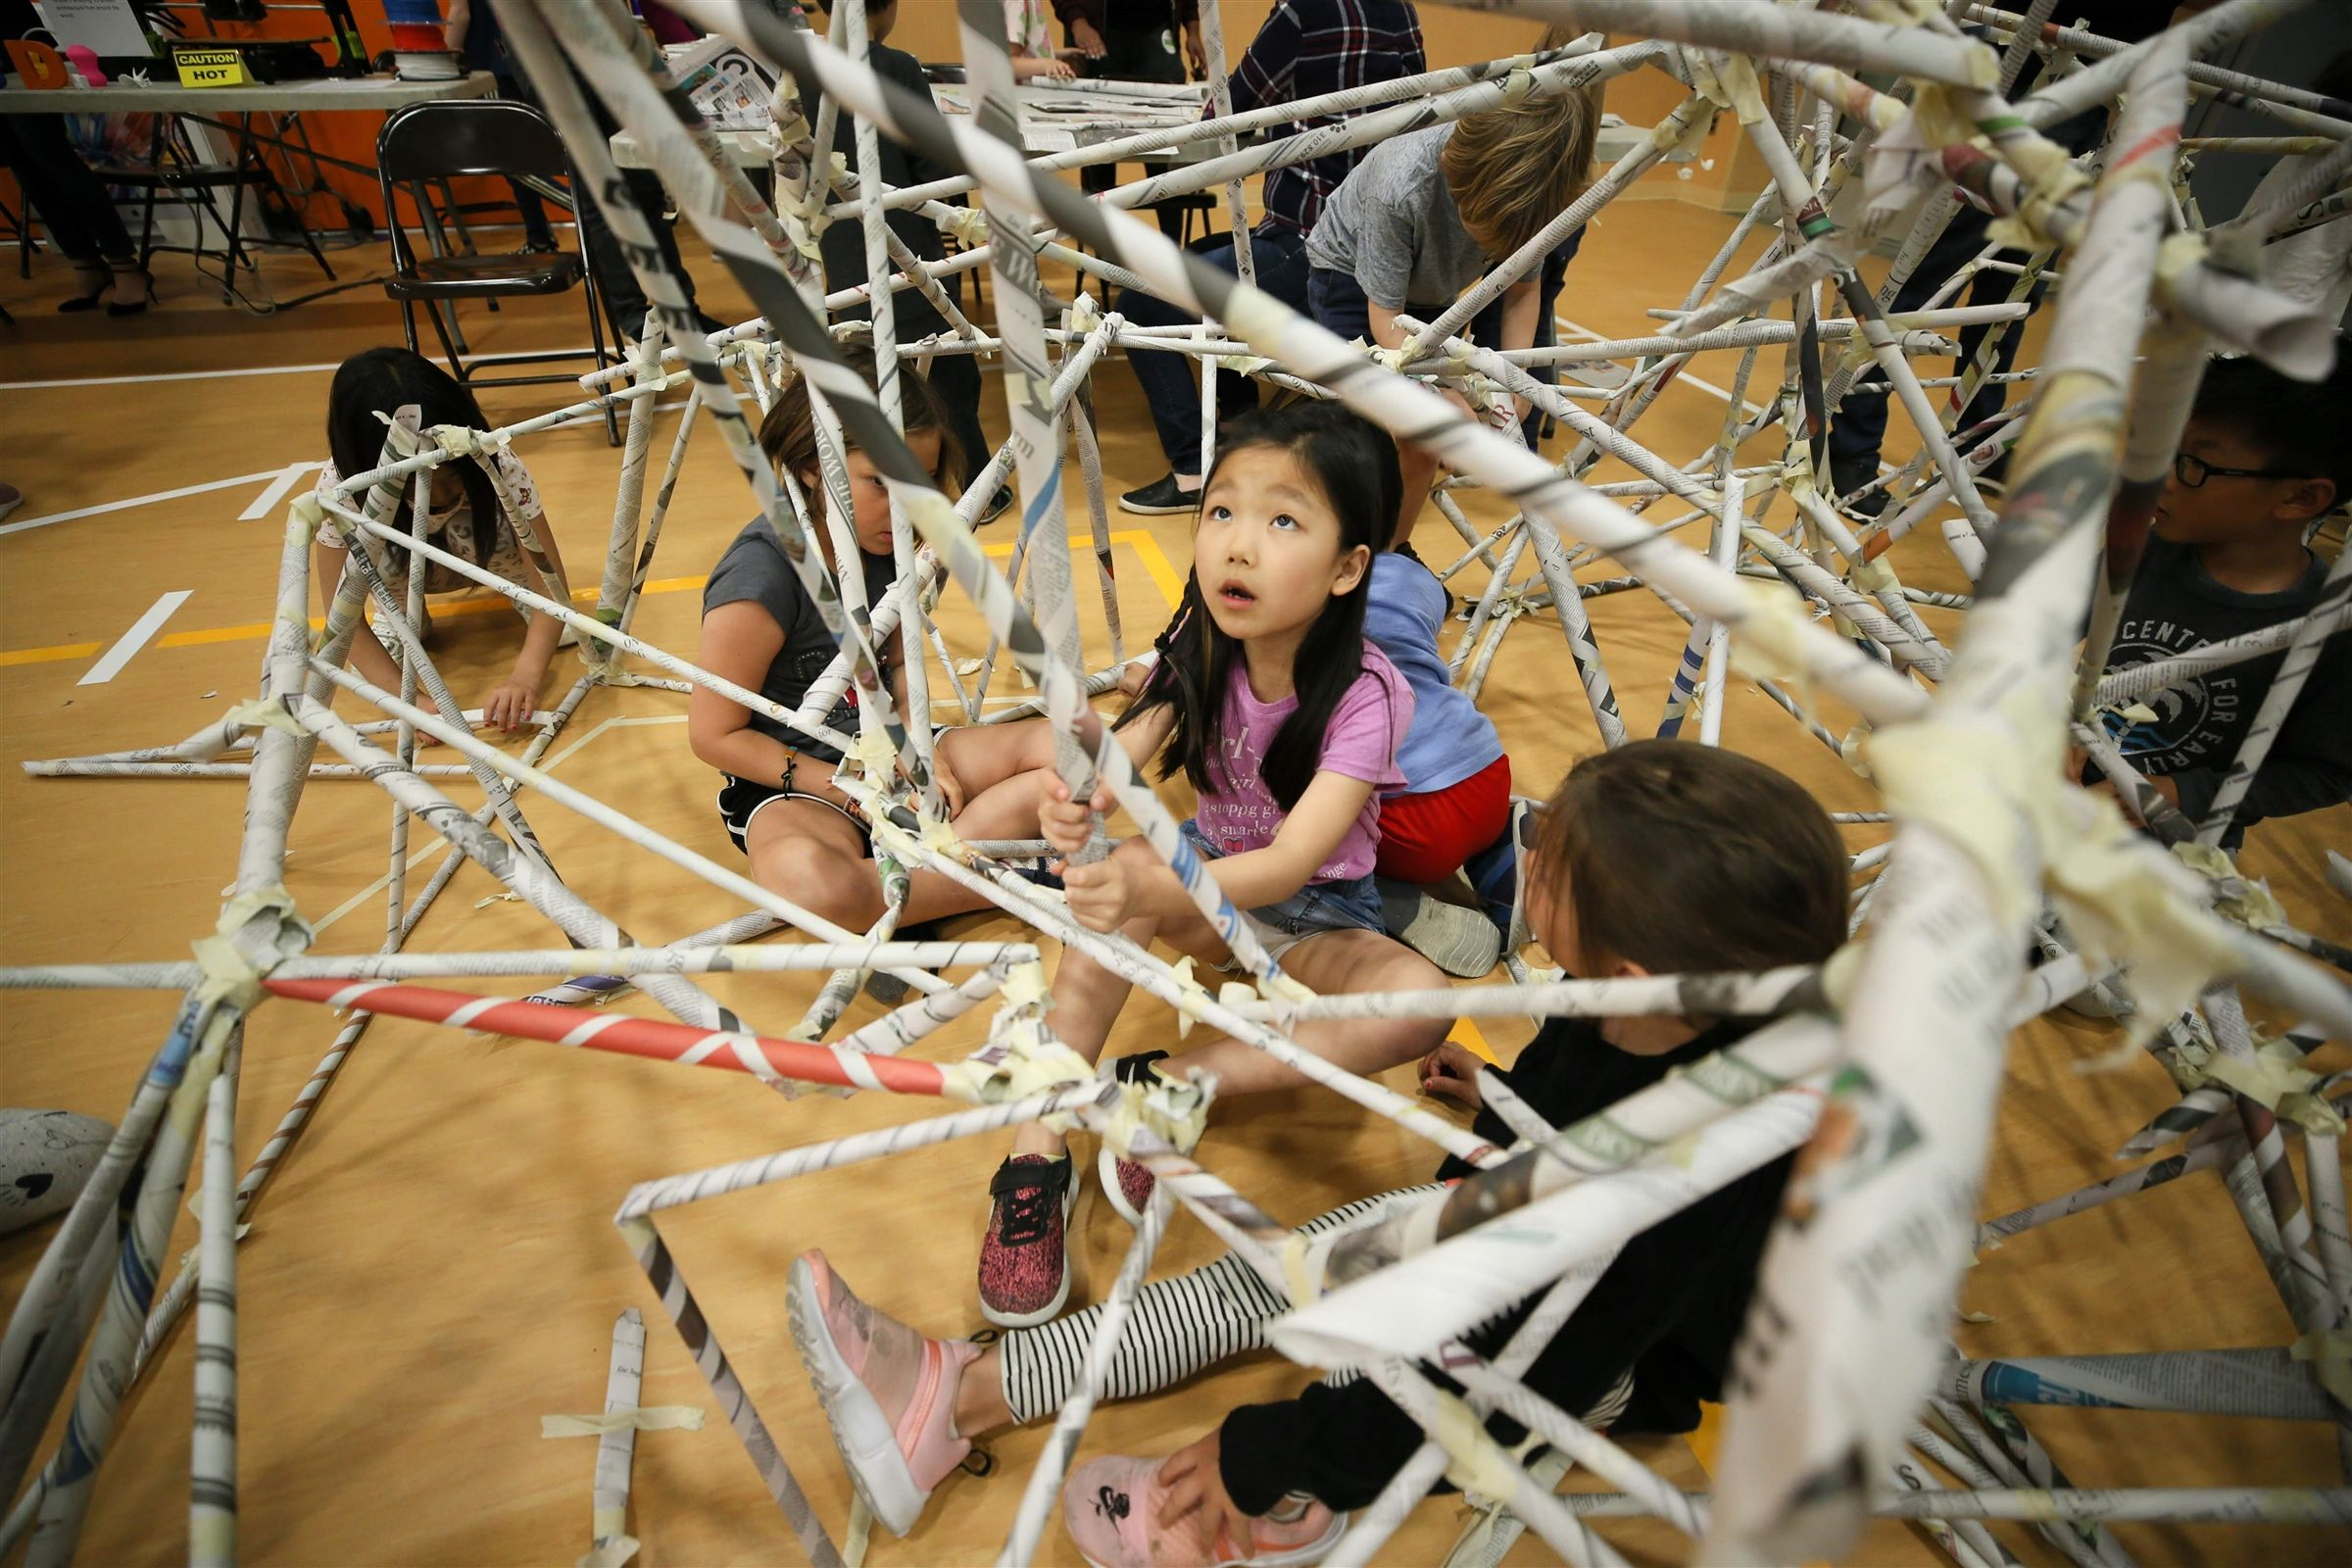 Families enjoy exploring 30+ interactive activity stations focused on science, technology, engineering, arts, and math at the yearly STEAM Festival.